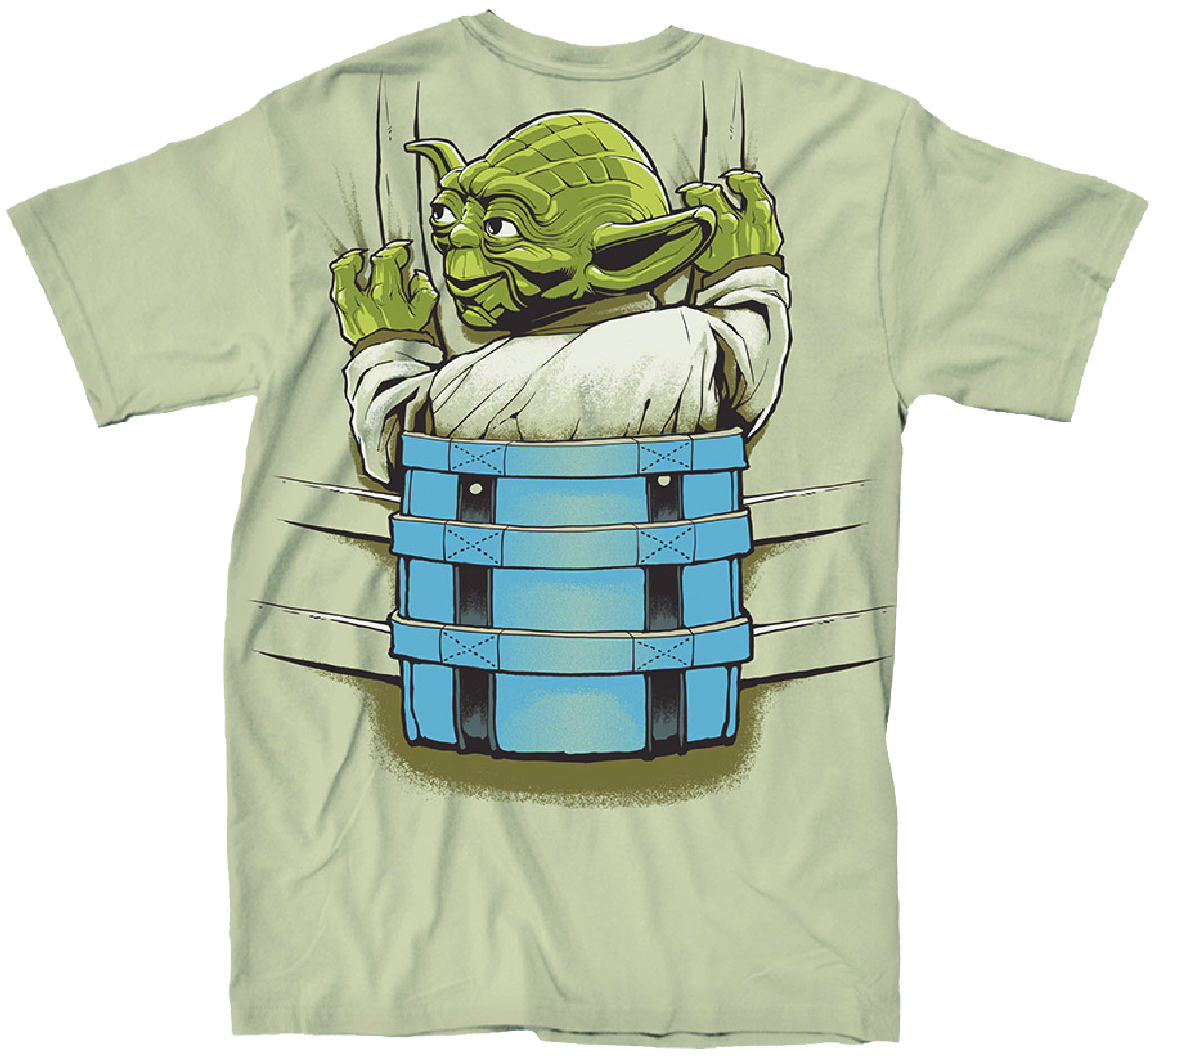 STAR WARS YODA BACKPACK PX SAND T/S SM